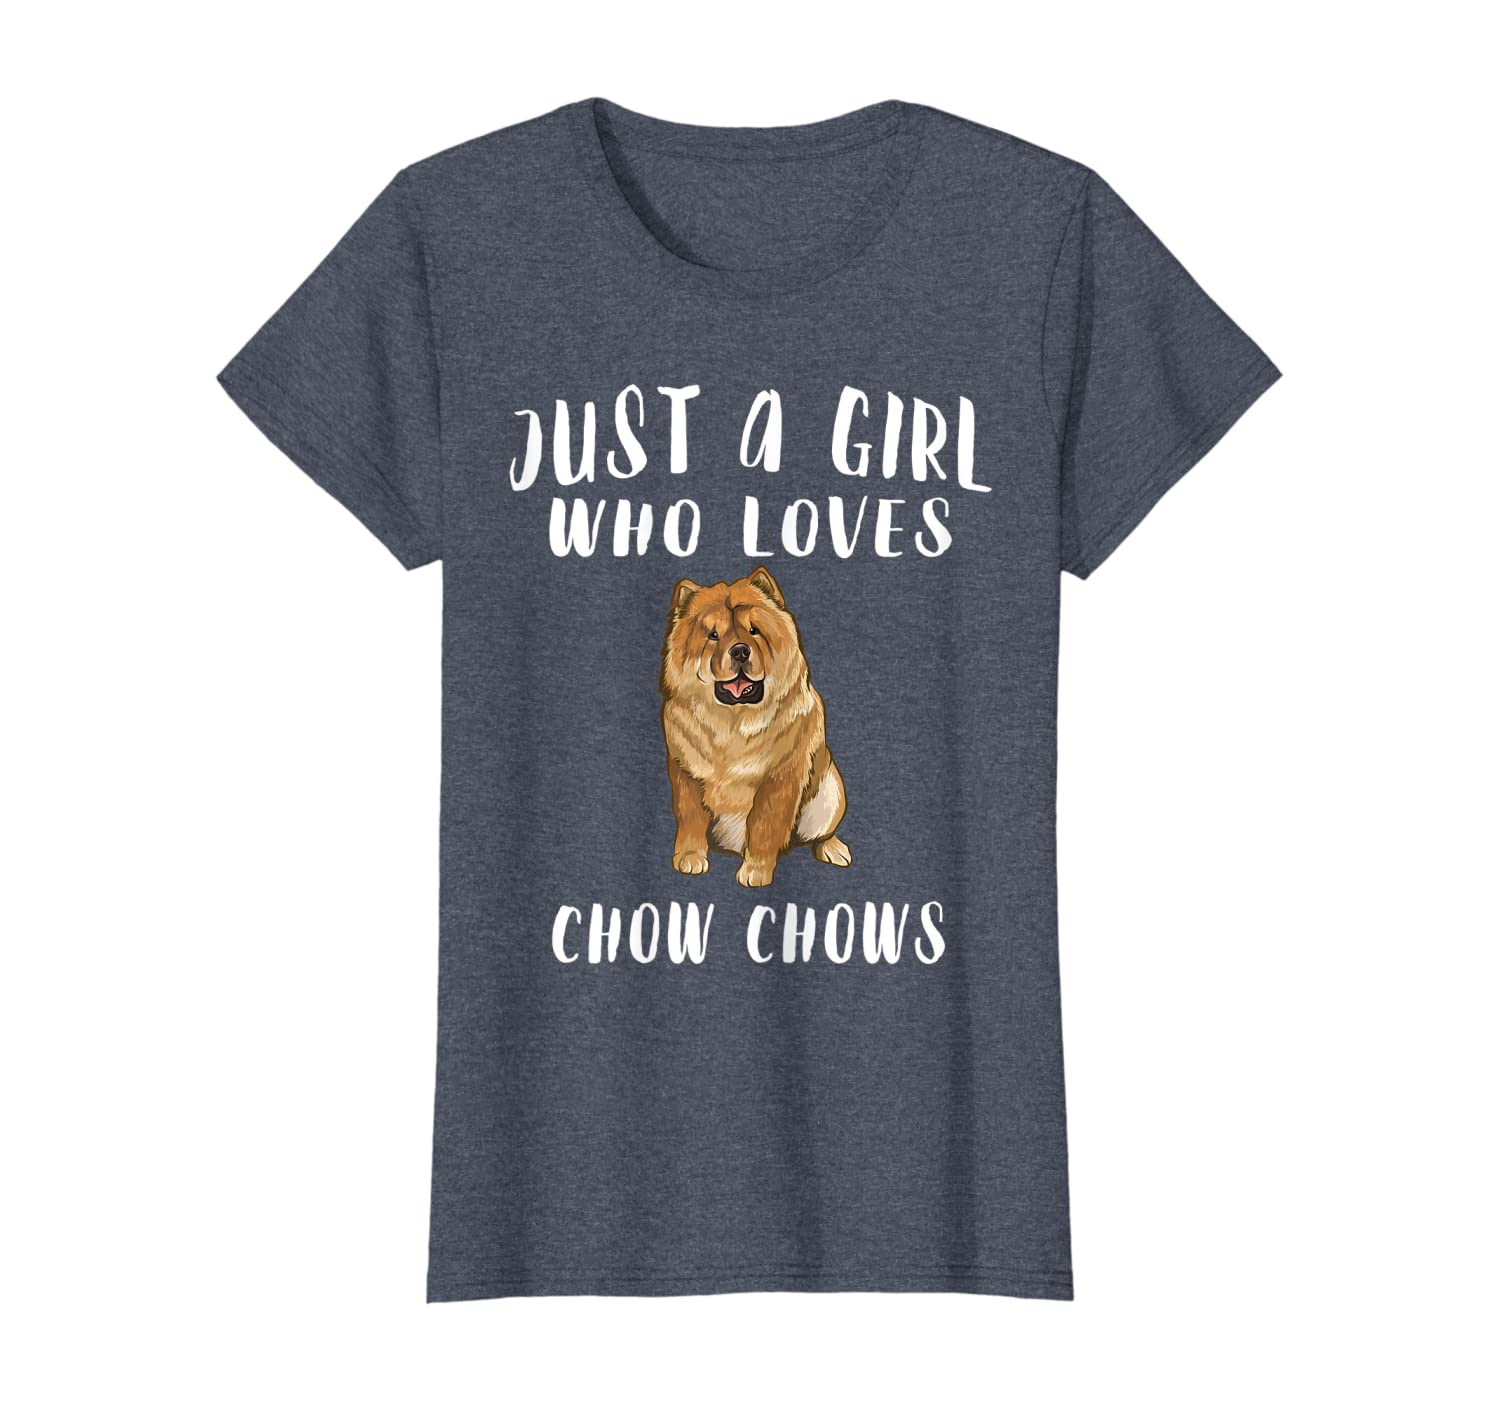 Juste Une Fille Qui Aime Chow Chow T-Shirt